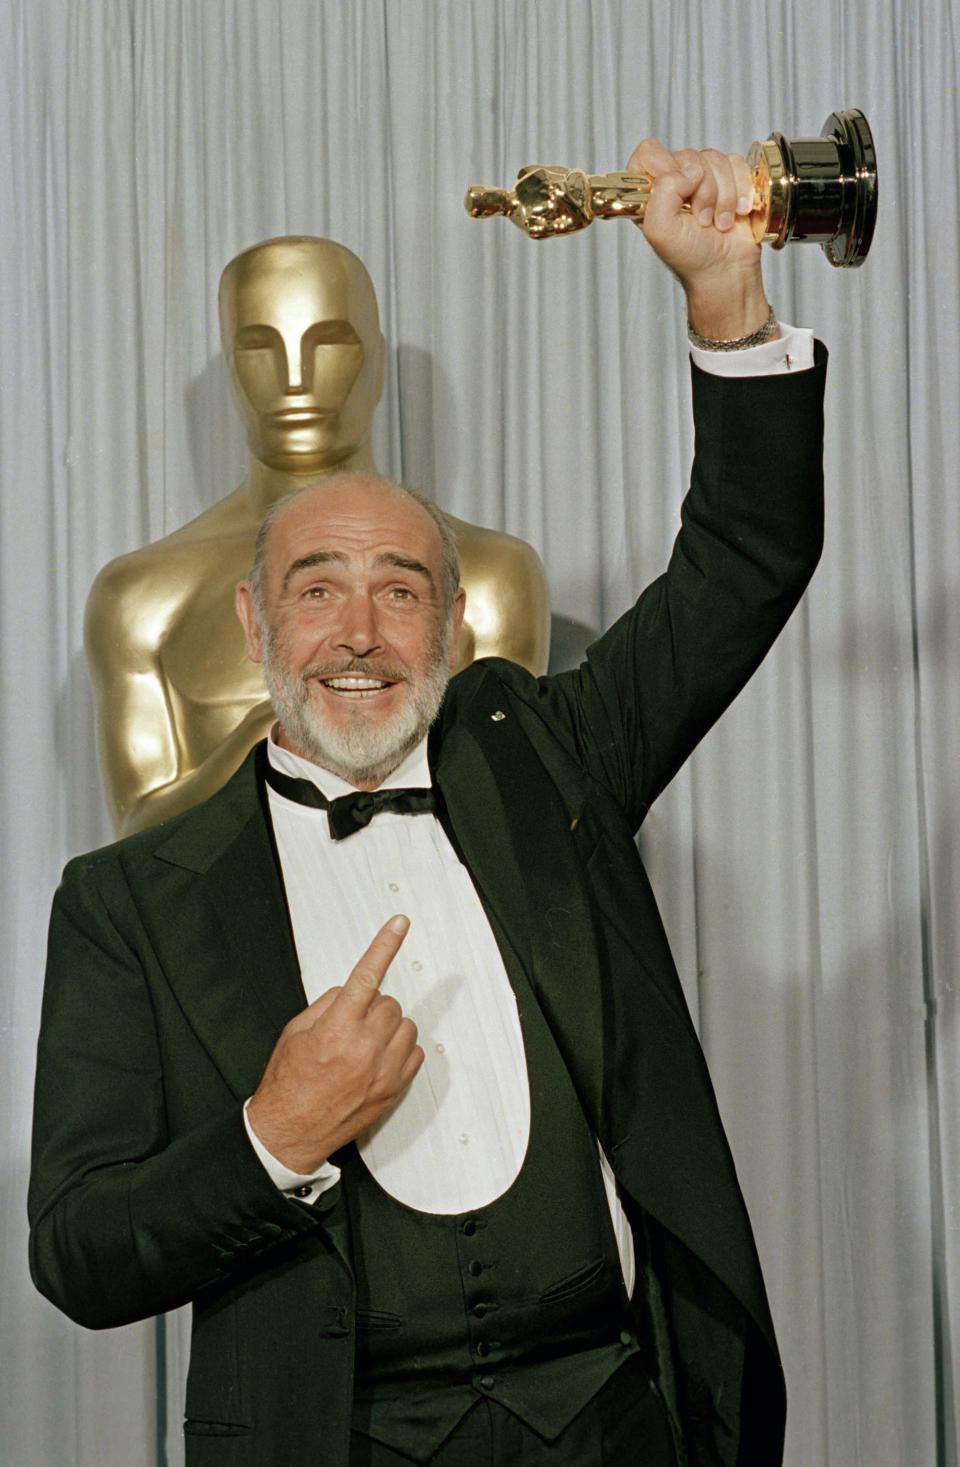 "FILE - In this file photo dated April 11, 1988, Sean Connery holds up his best supporting actor Oscar for ""The Untouchables"" at the 60th annual Academy Awards in Los Angeles, Ca., USA. Scottish actor Sean Connery, considered by many to have been the best James Bond, has died aged 90, according to an announcement from his family. (AP Photo/Lennox McLendon, FILE)"